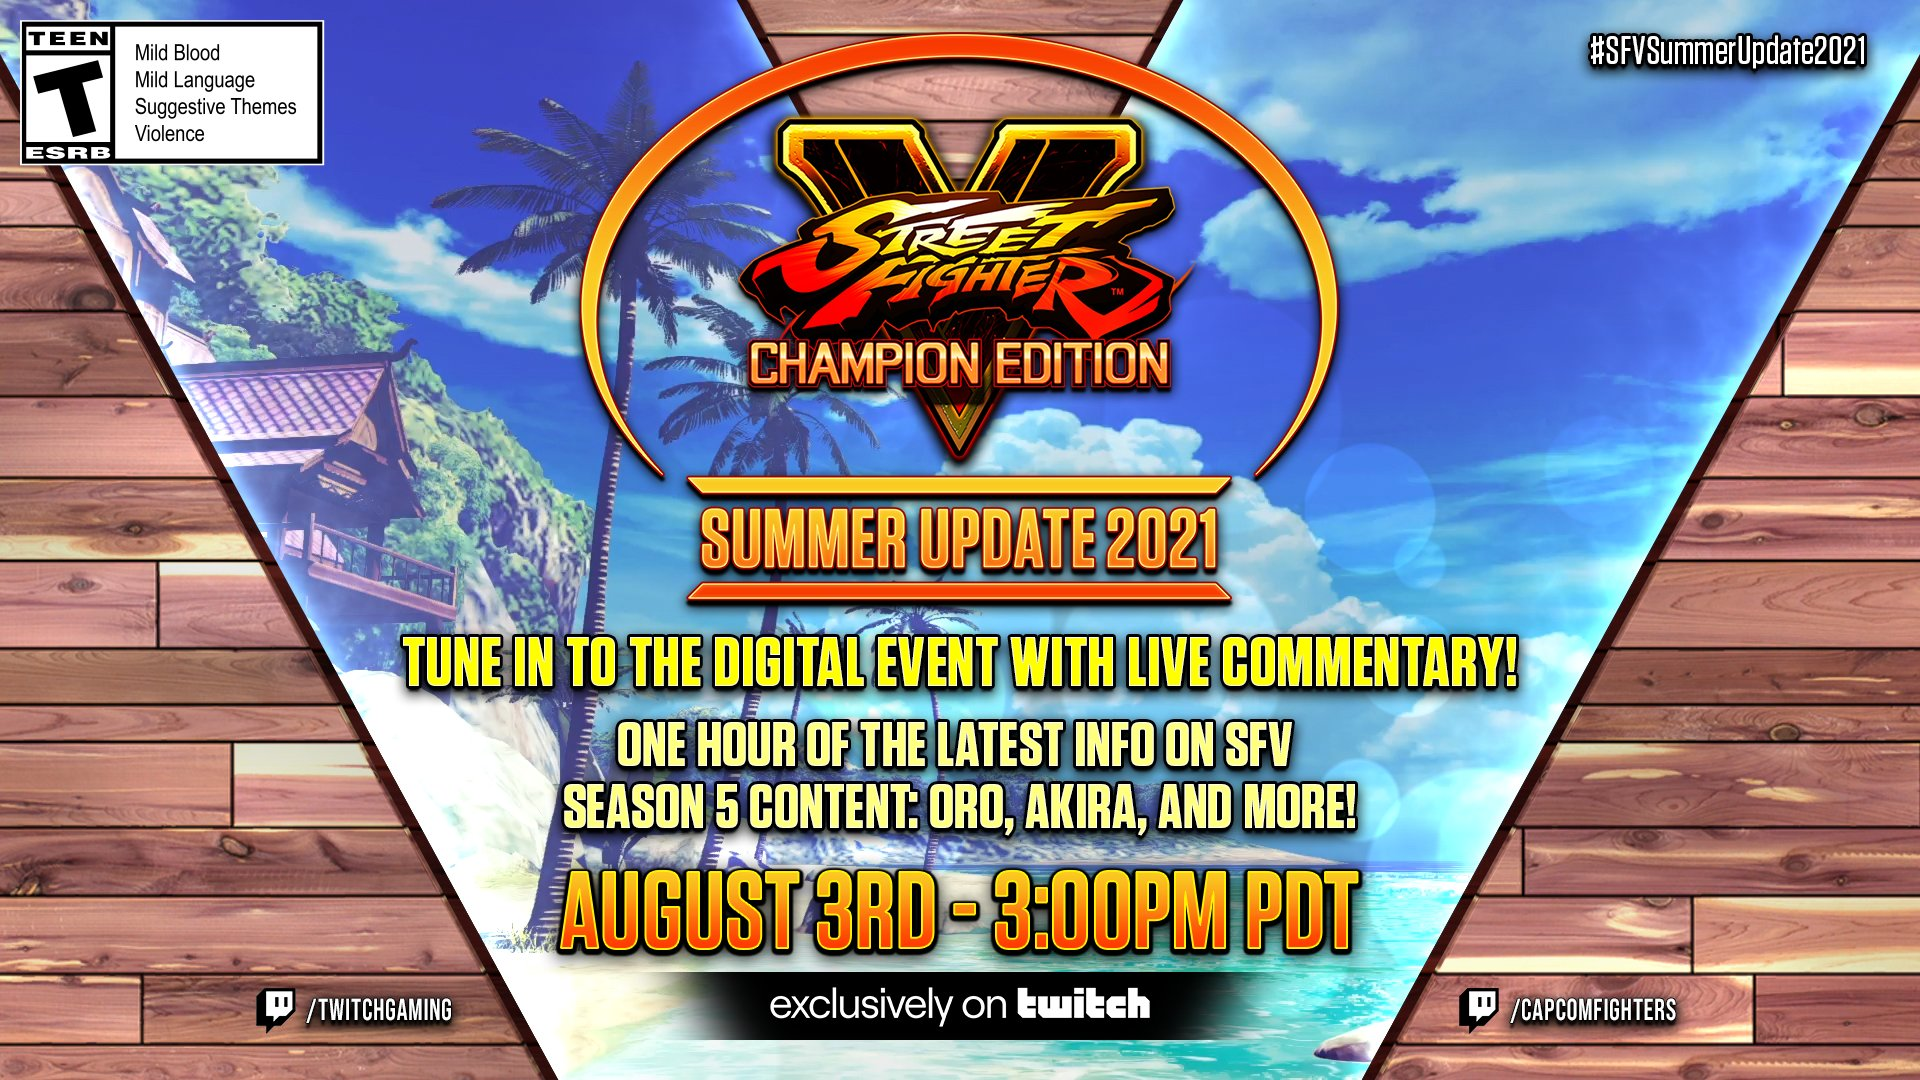 Street Fighter V: Champion Edition Summer Update 2021 Show to Provide Updates on Oro, Akira